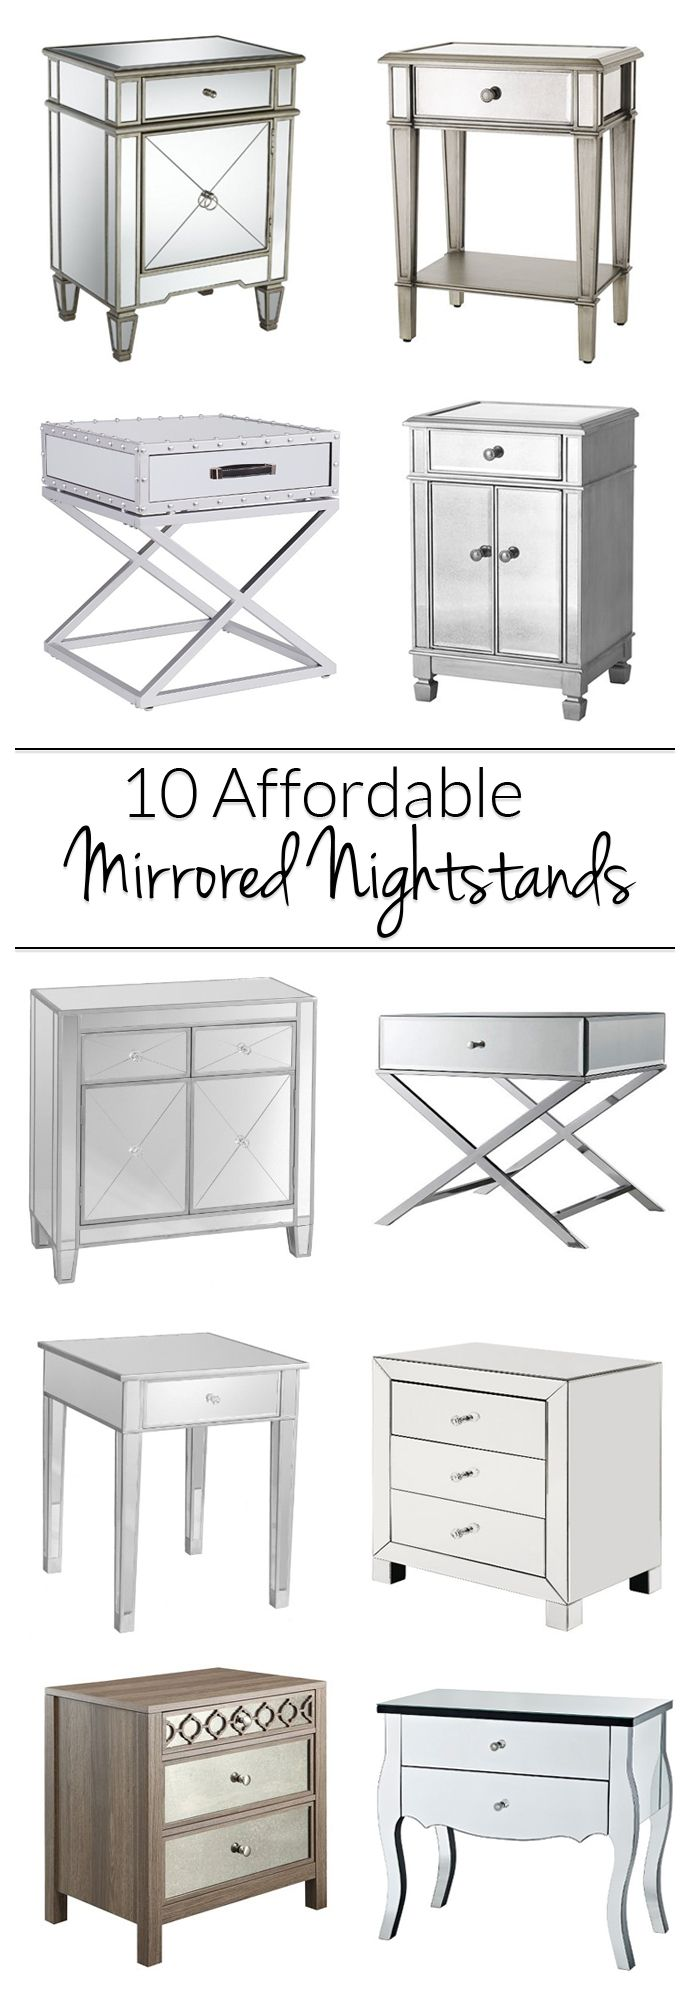 Get A Mirrored Nightstand Without Breaking The Bank All These